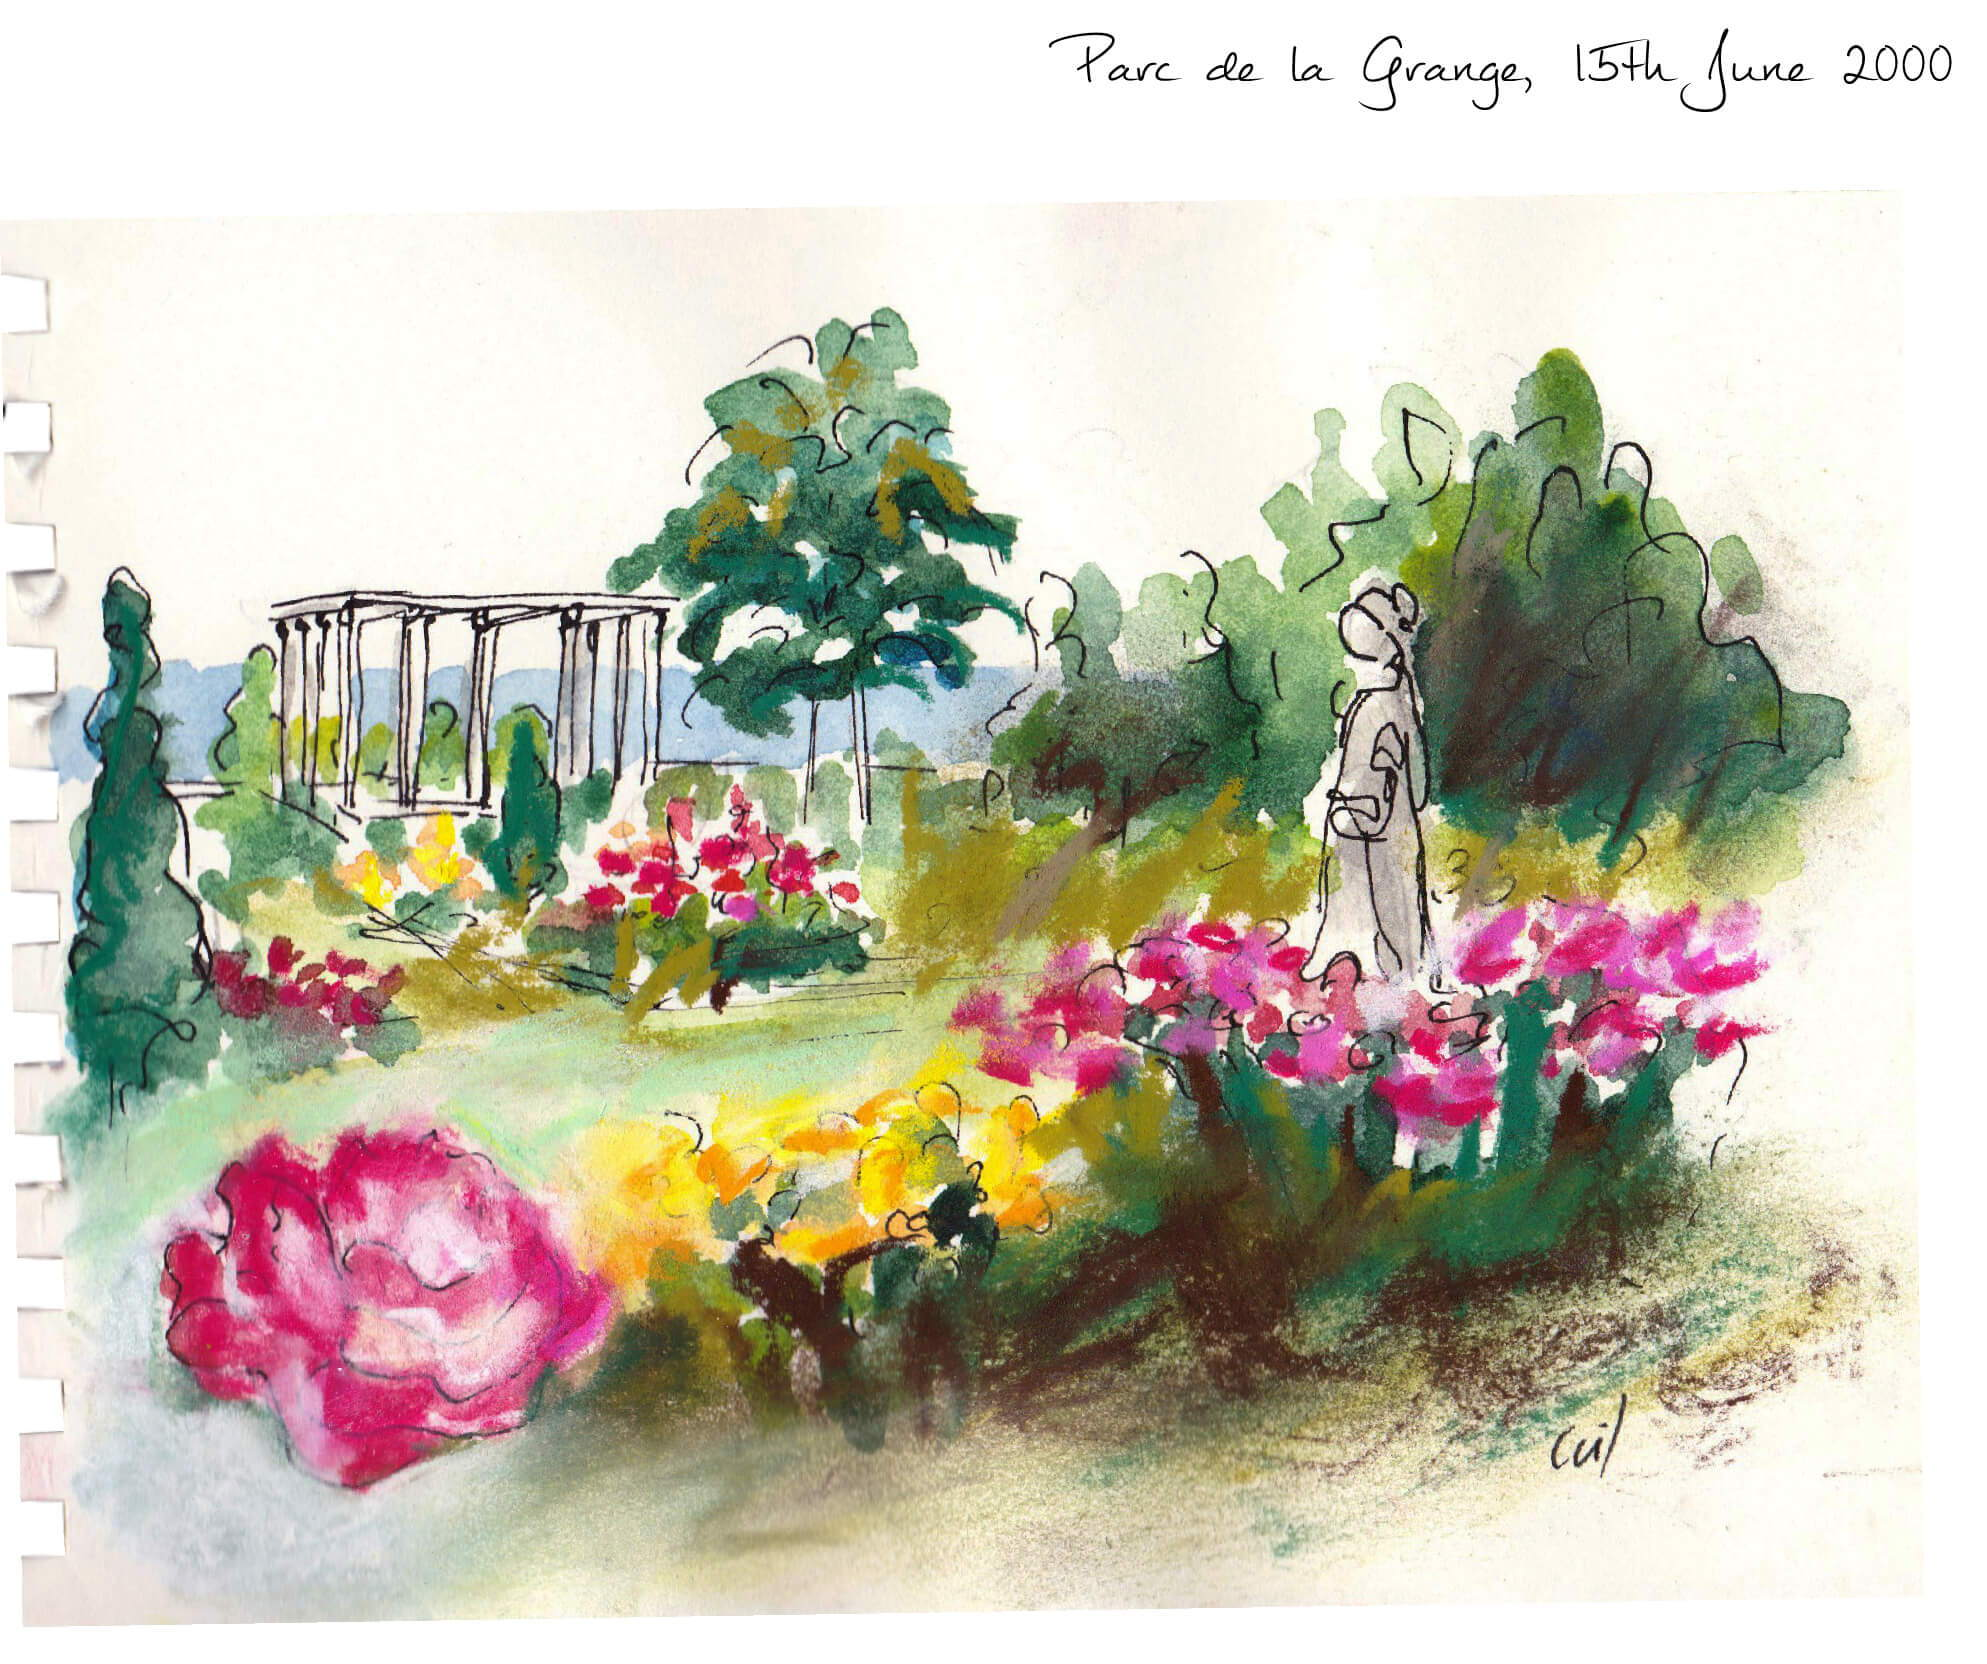 Rose Empire Inspiration behind this floral spicy and woody unisex perfume, Parc de la Grange in Geneva the rose garden